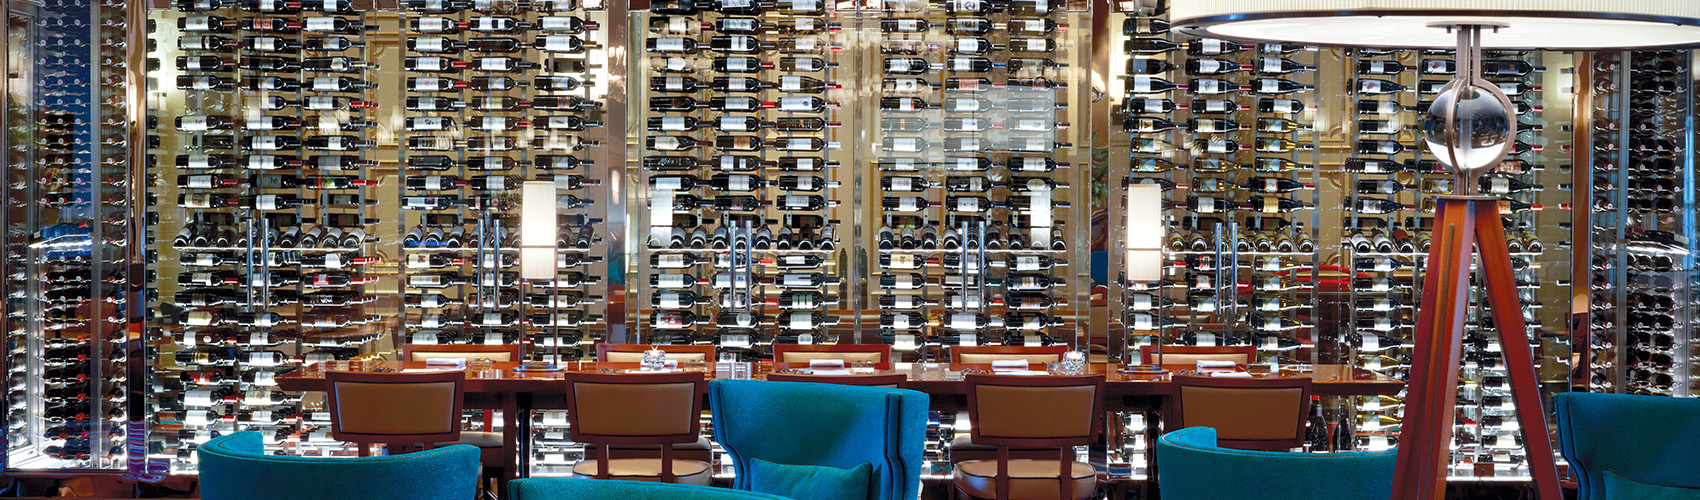 Wine Wall at HMF at The Breakers